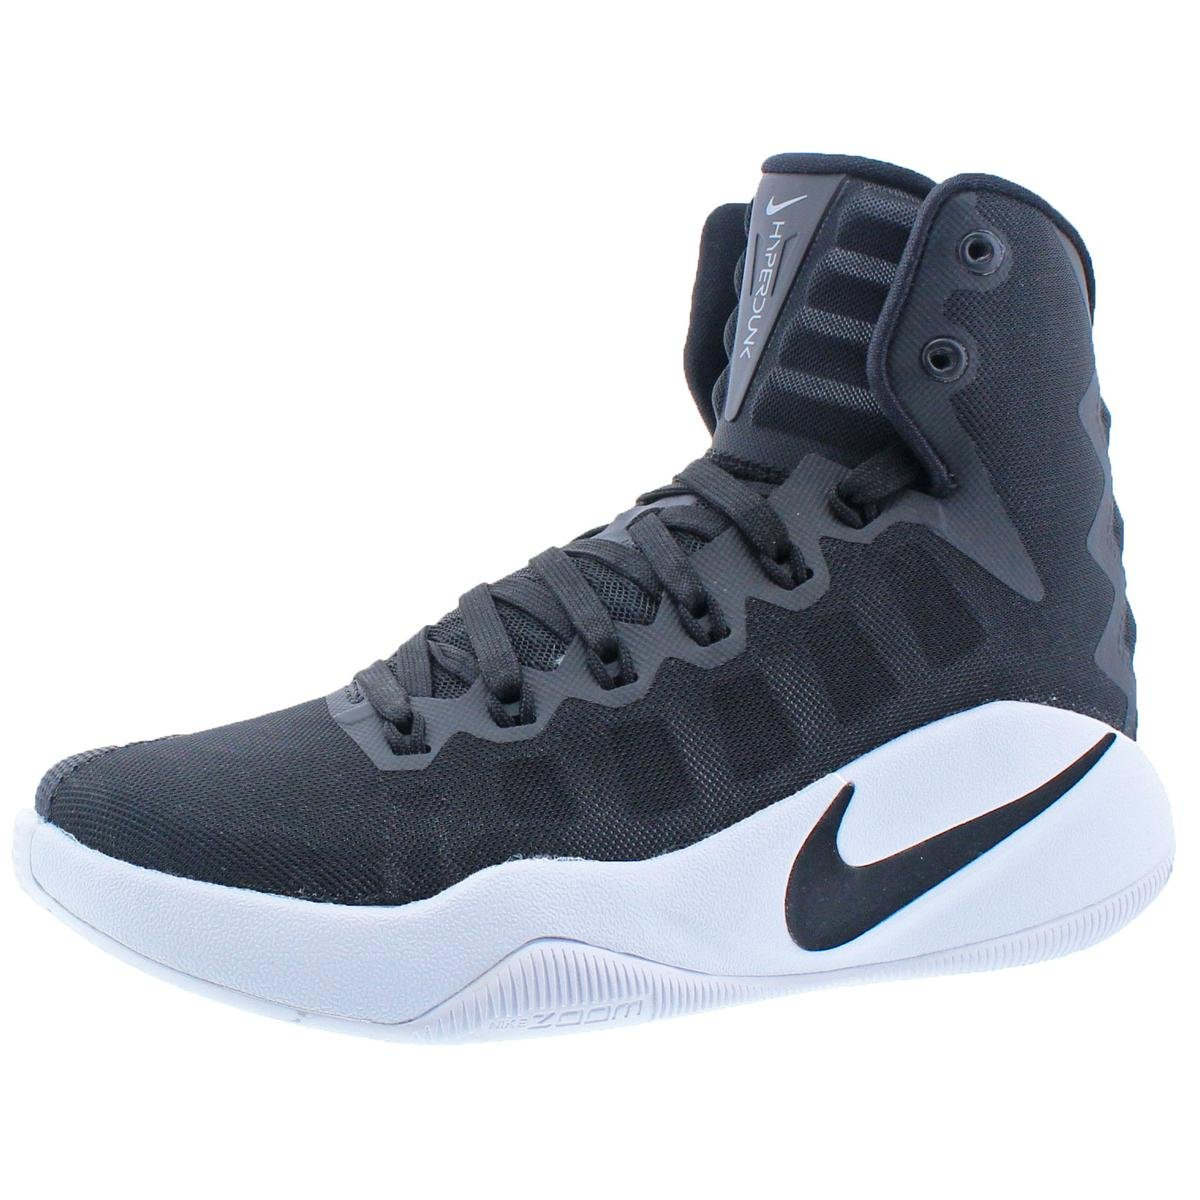 newest 9aec6 7ce00 Galleon - Nike Hyperdunk 2016 Women s Mesh Mid-Top Basketball Shoes Black  Size 5